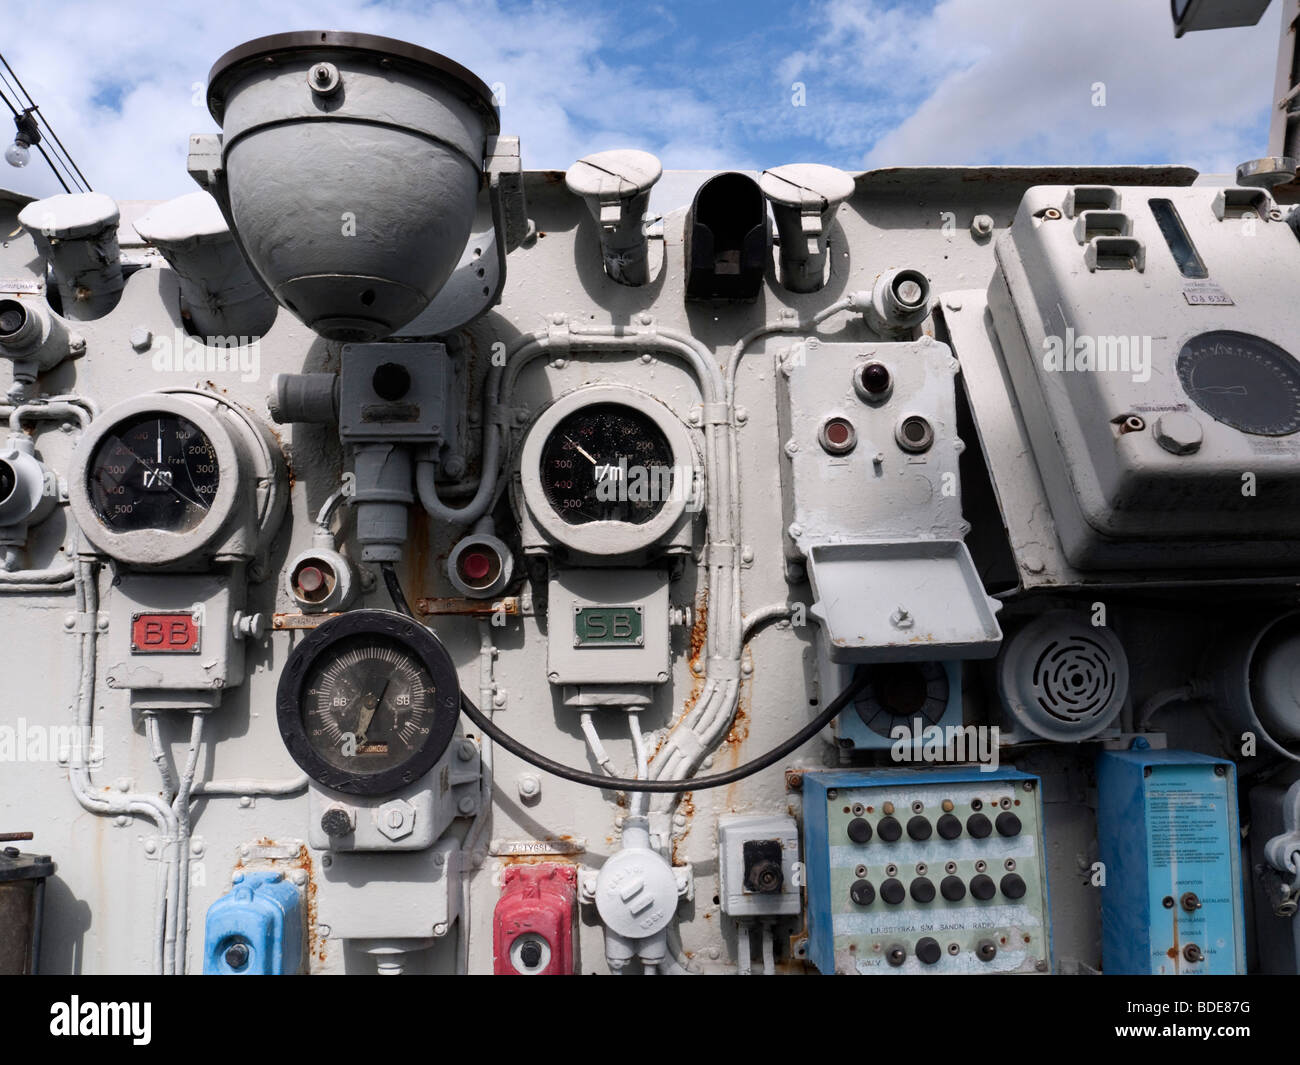 Detail of control dials on bridge of destroyer Smaland at Maritime Museum in Gothenburg Sweden - Stock Image